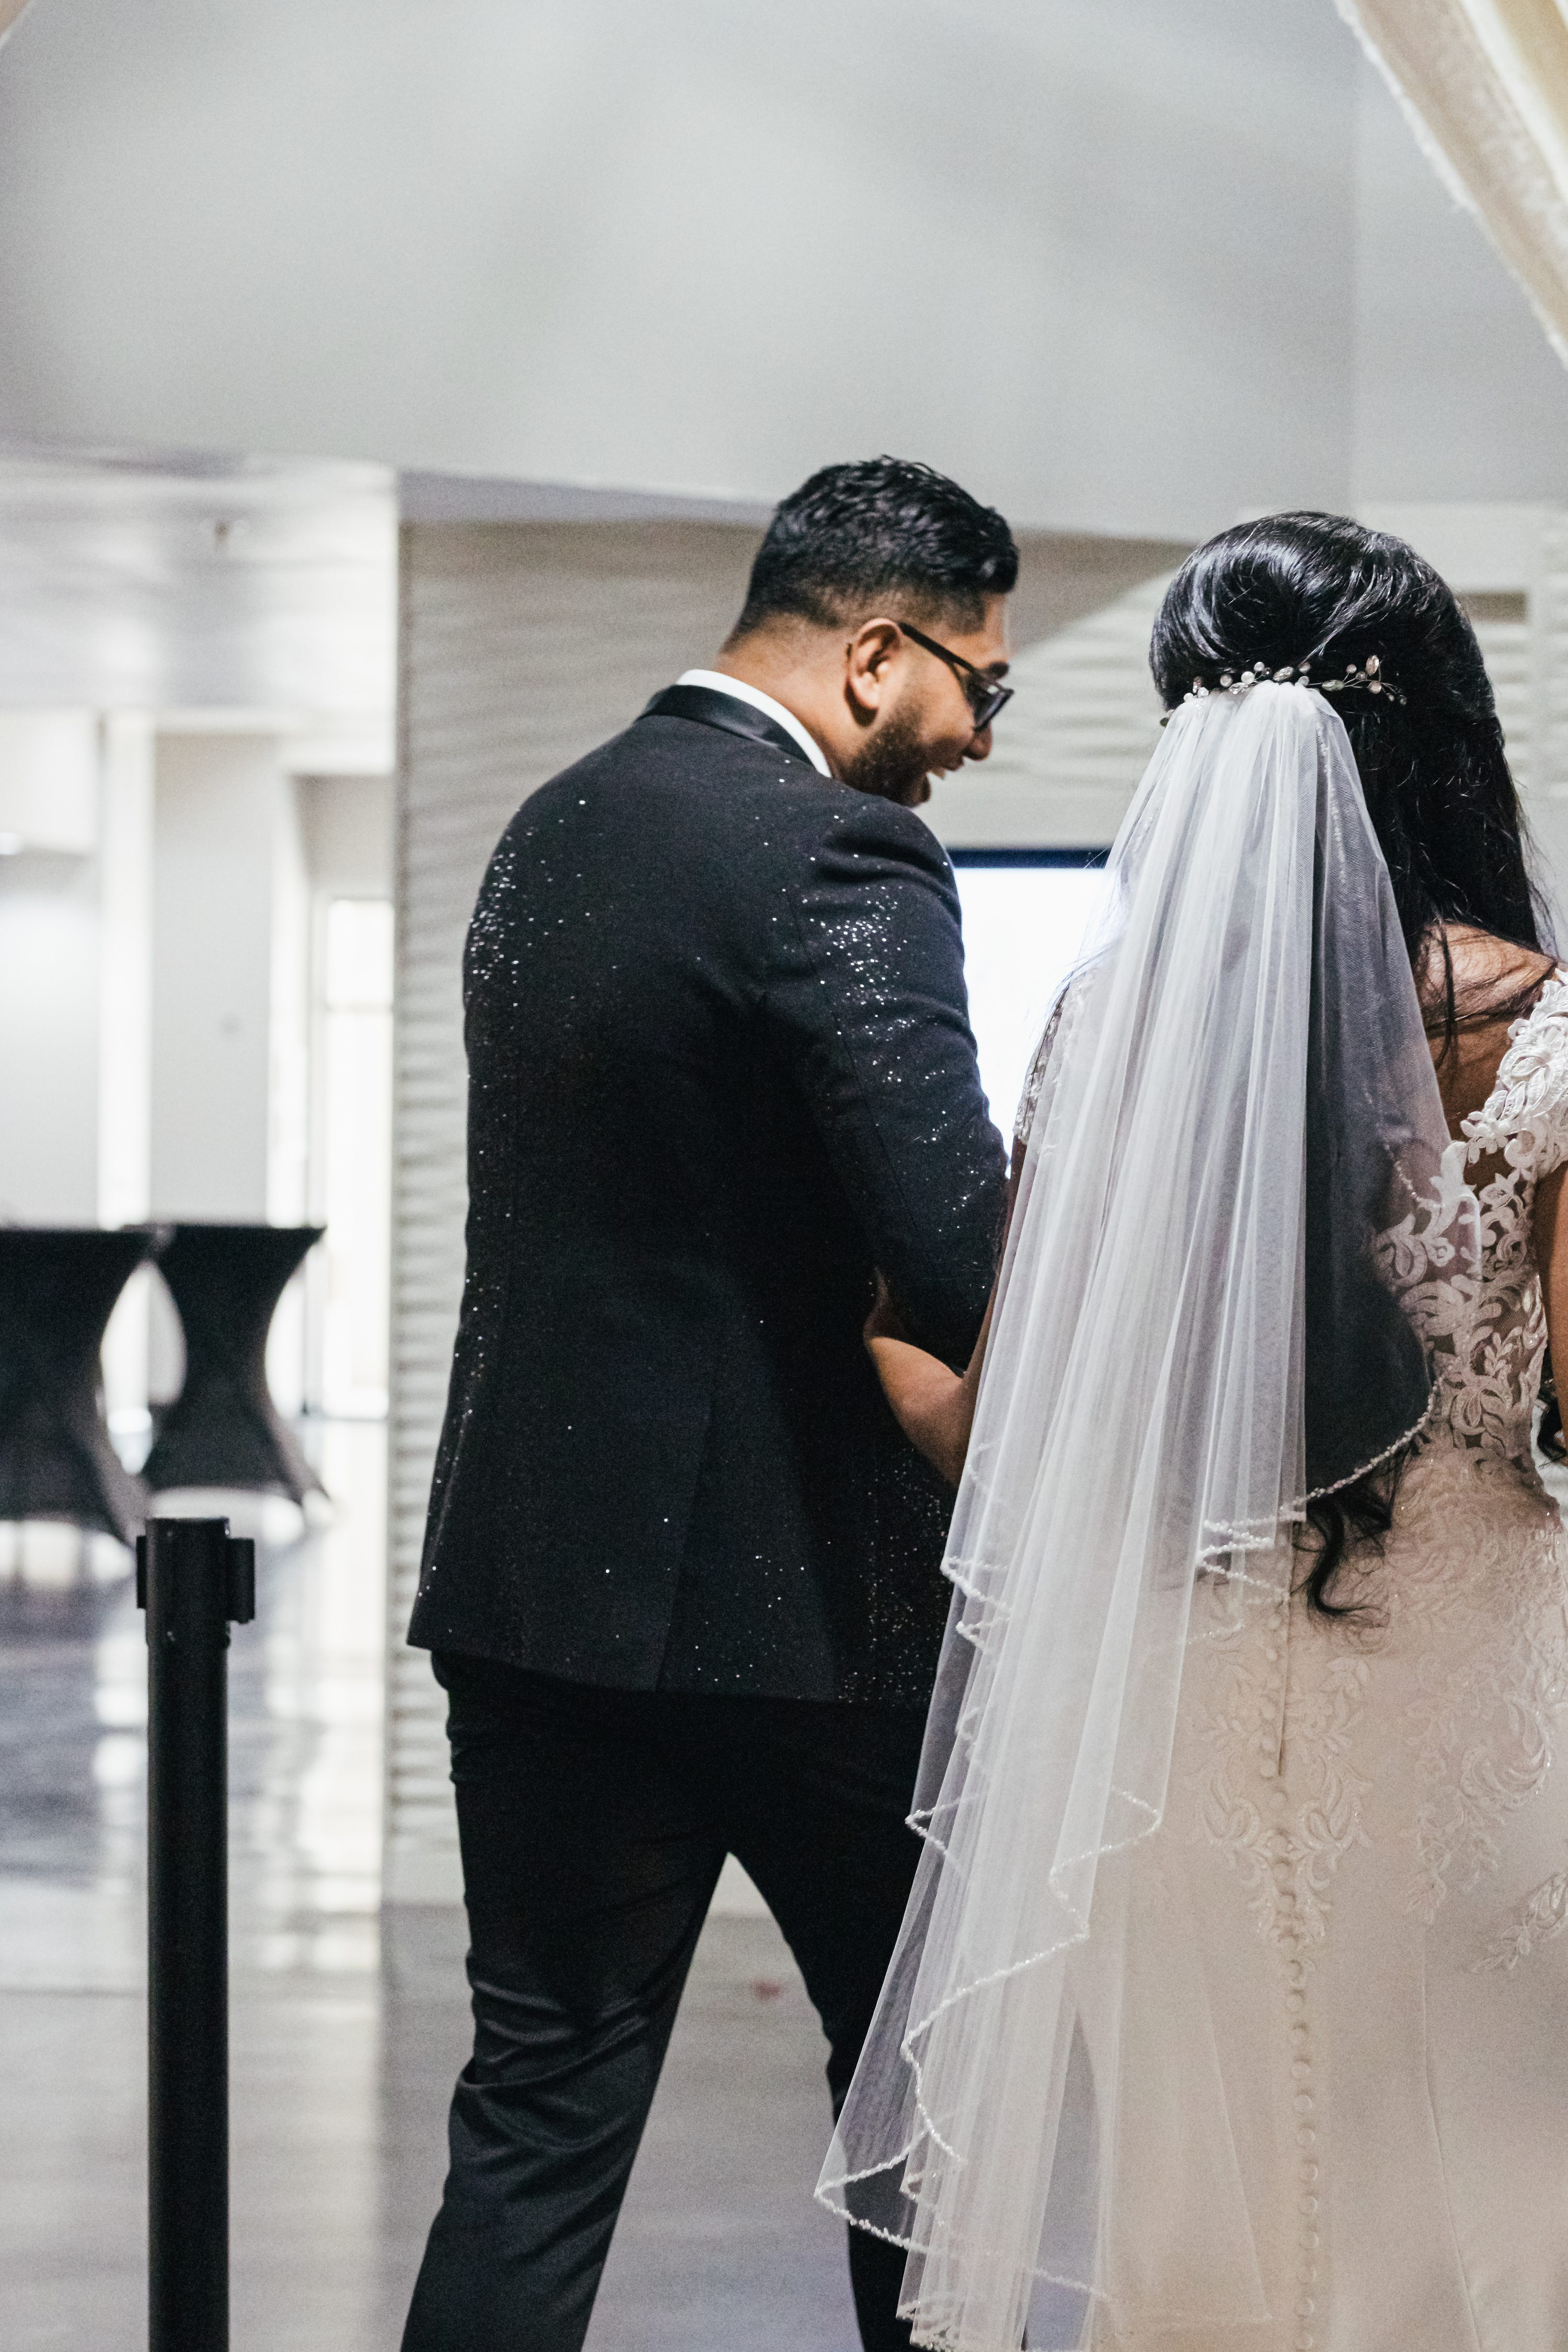 South Asian Wedding,Getting Ready Pictures